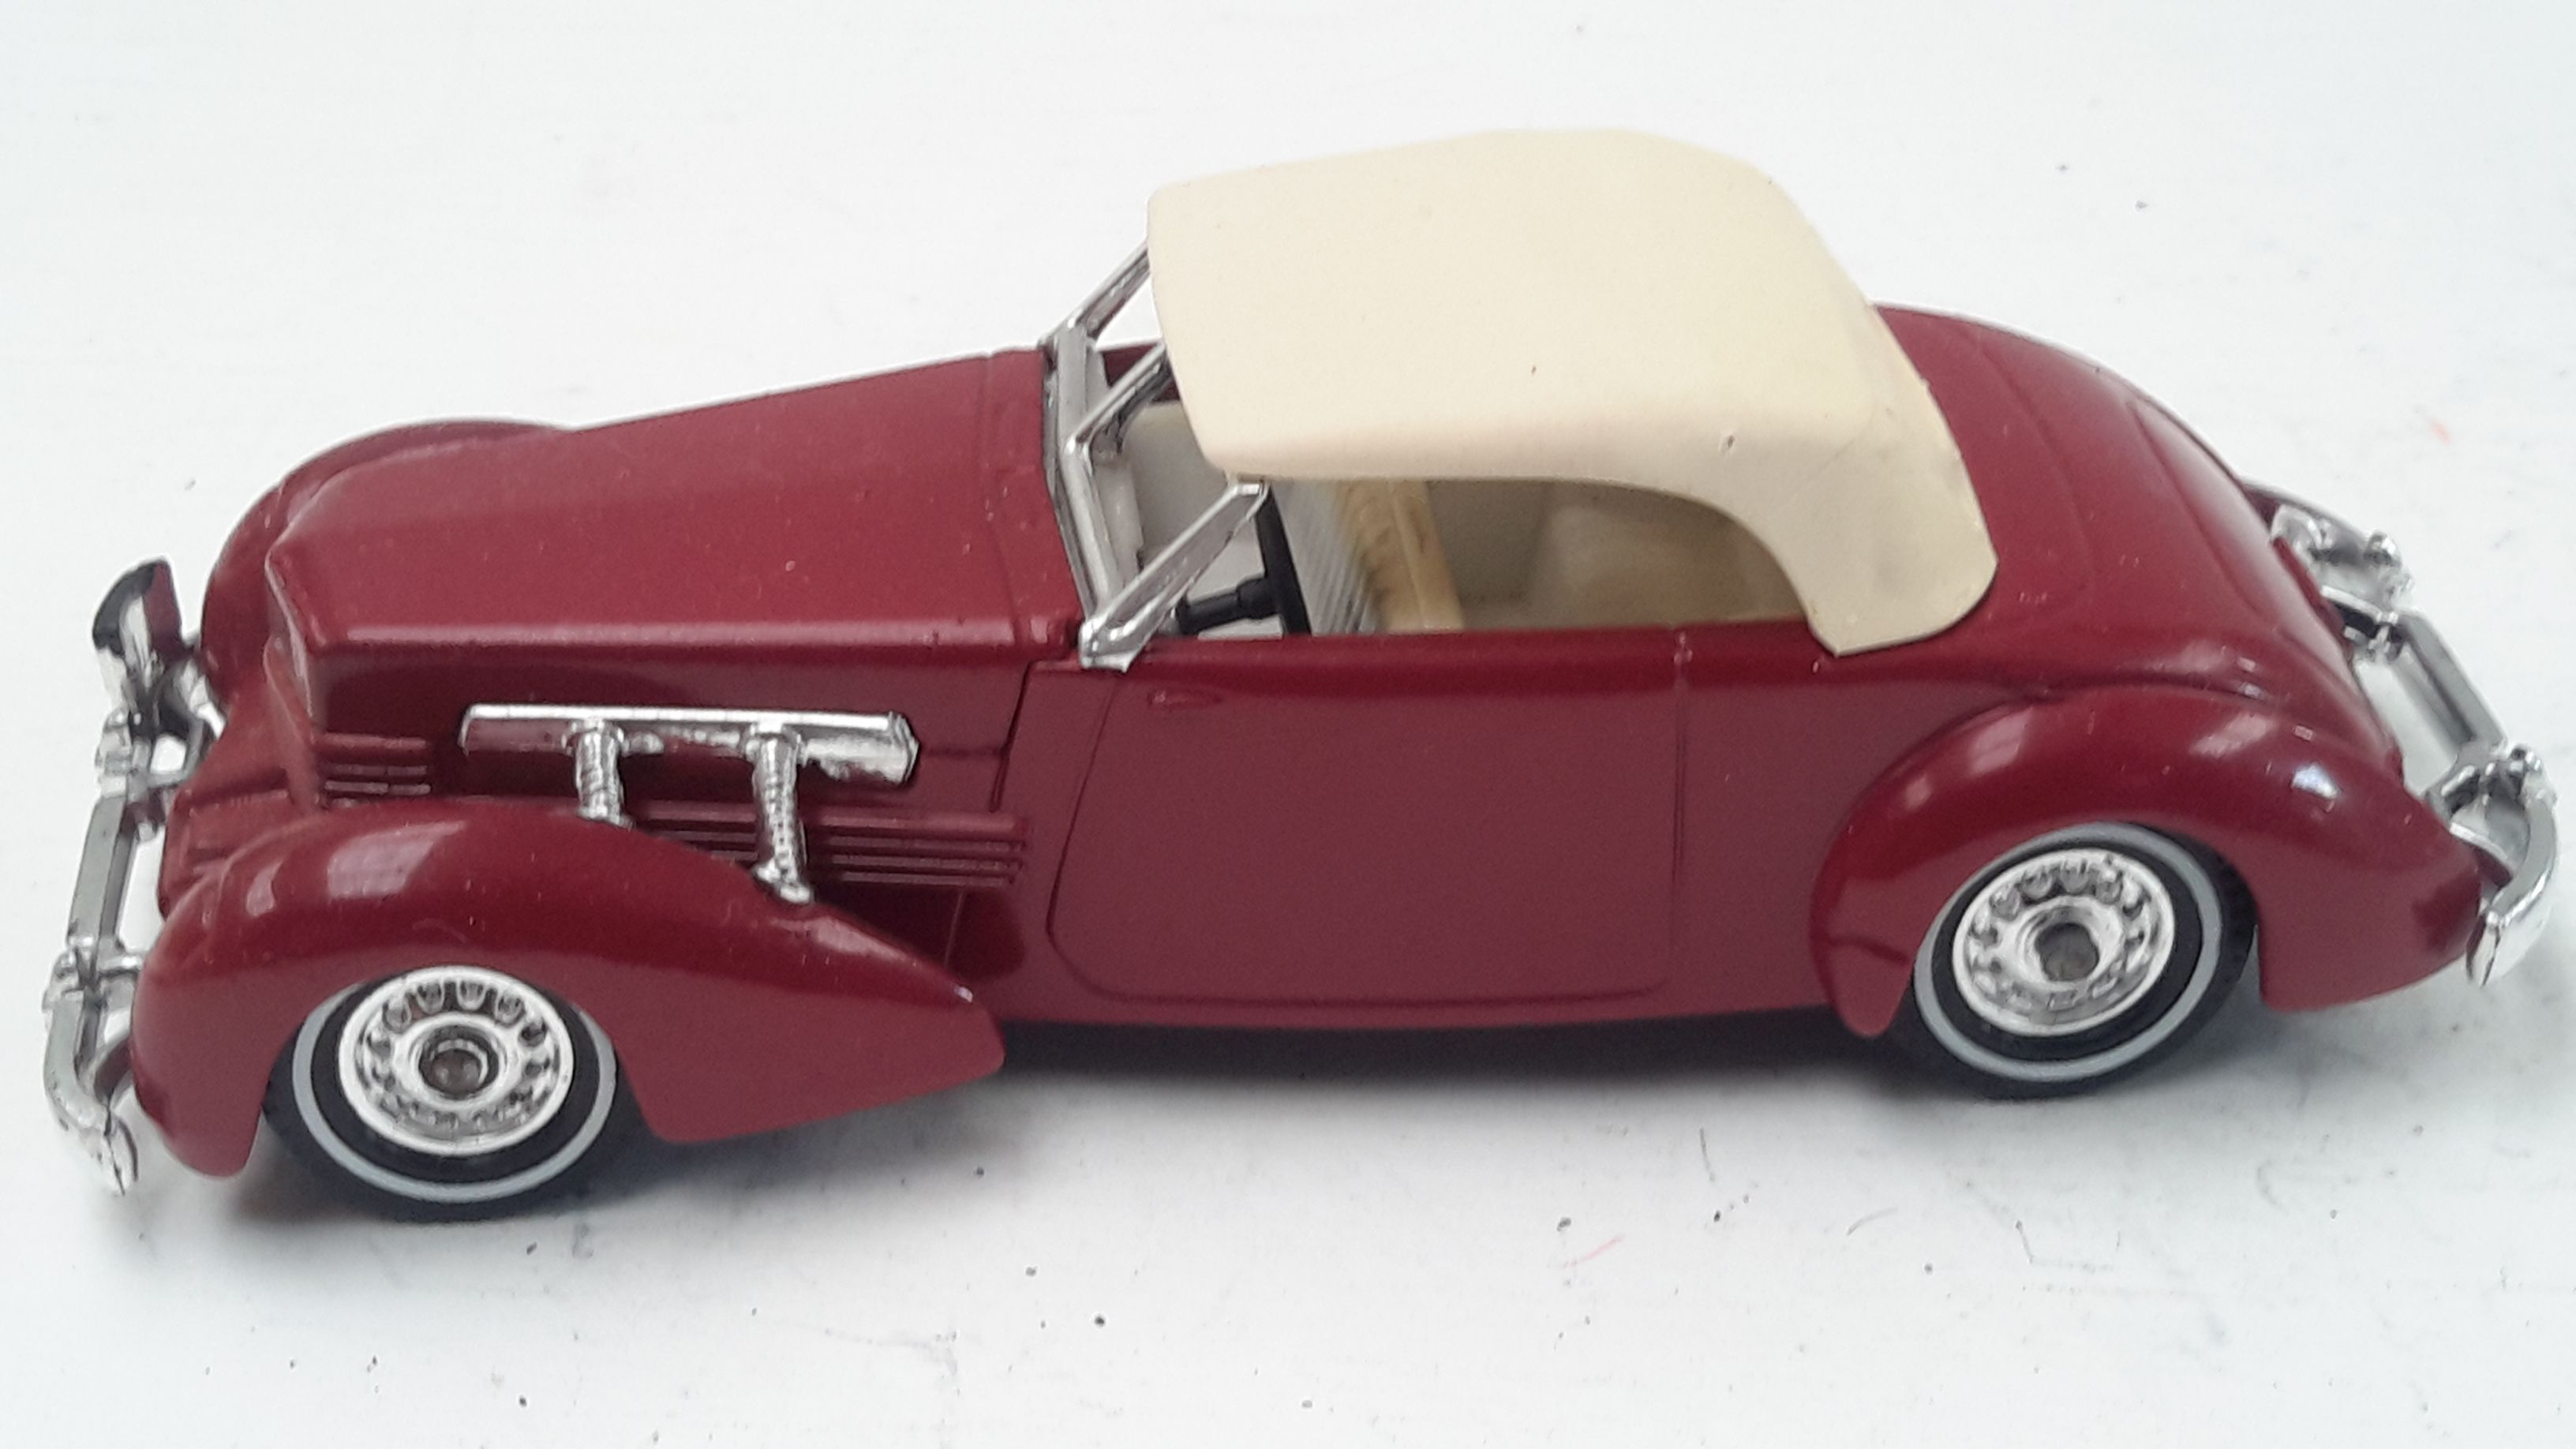 Grand opening of my website featuring diecast model cars